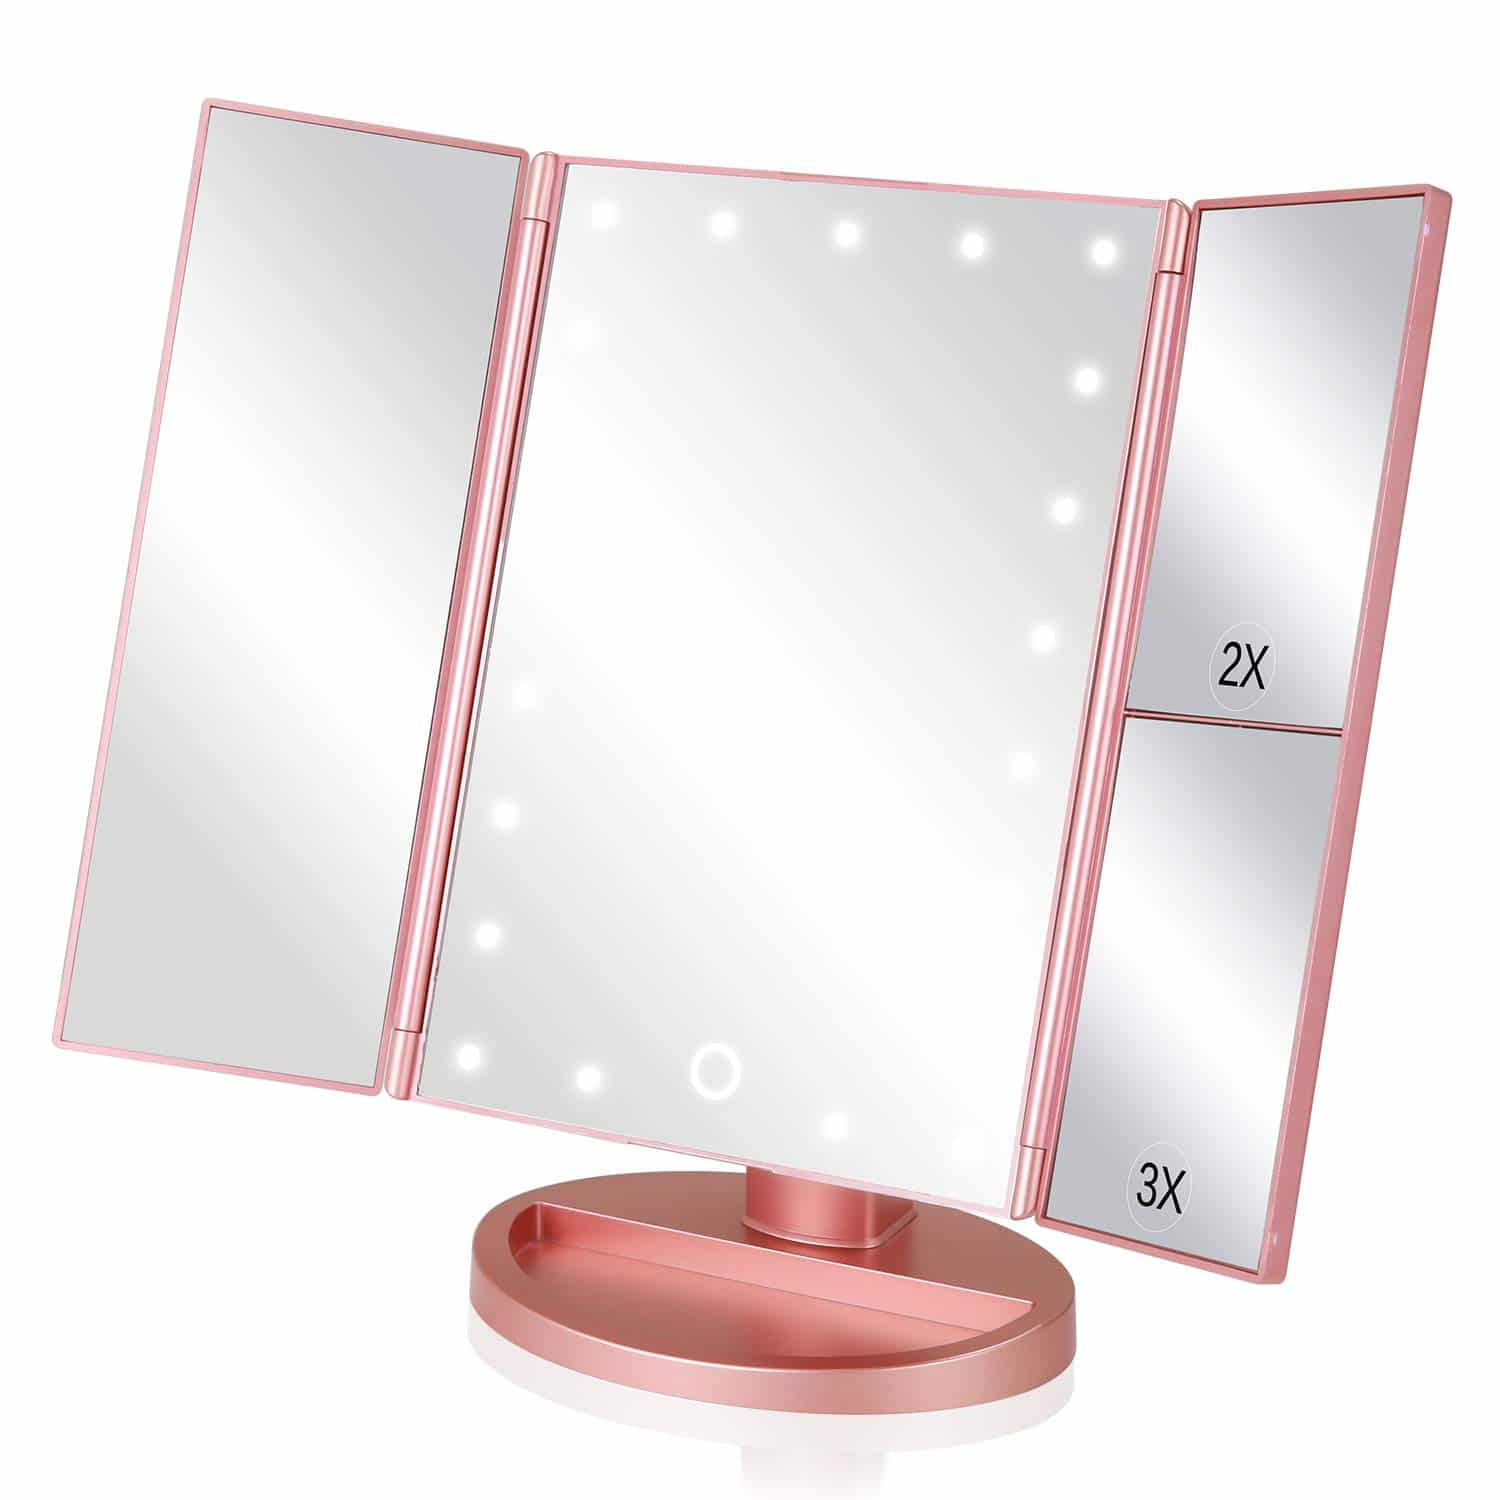 EASEHOLD Makeup Vanity